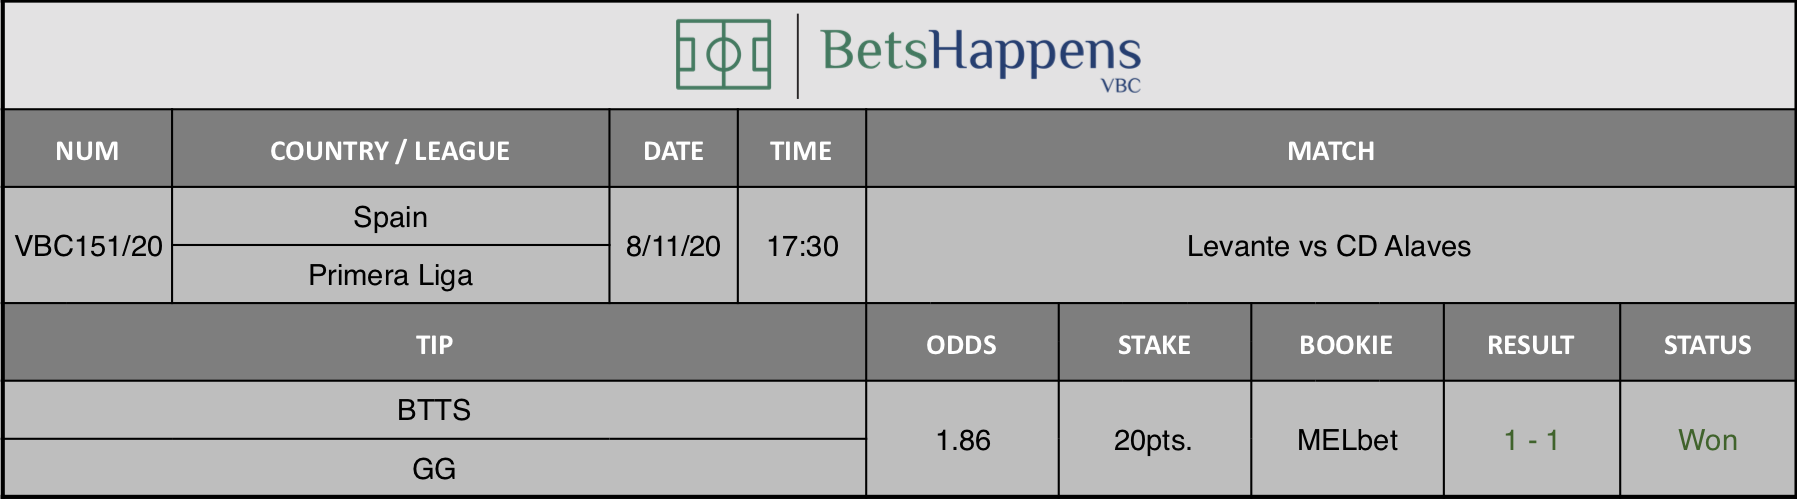 Results of our tip for the Levante vs CD Alaves match where BTTS F/T  GG is recommended.